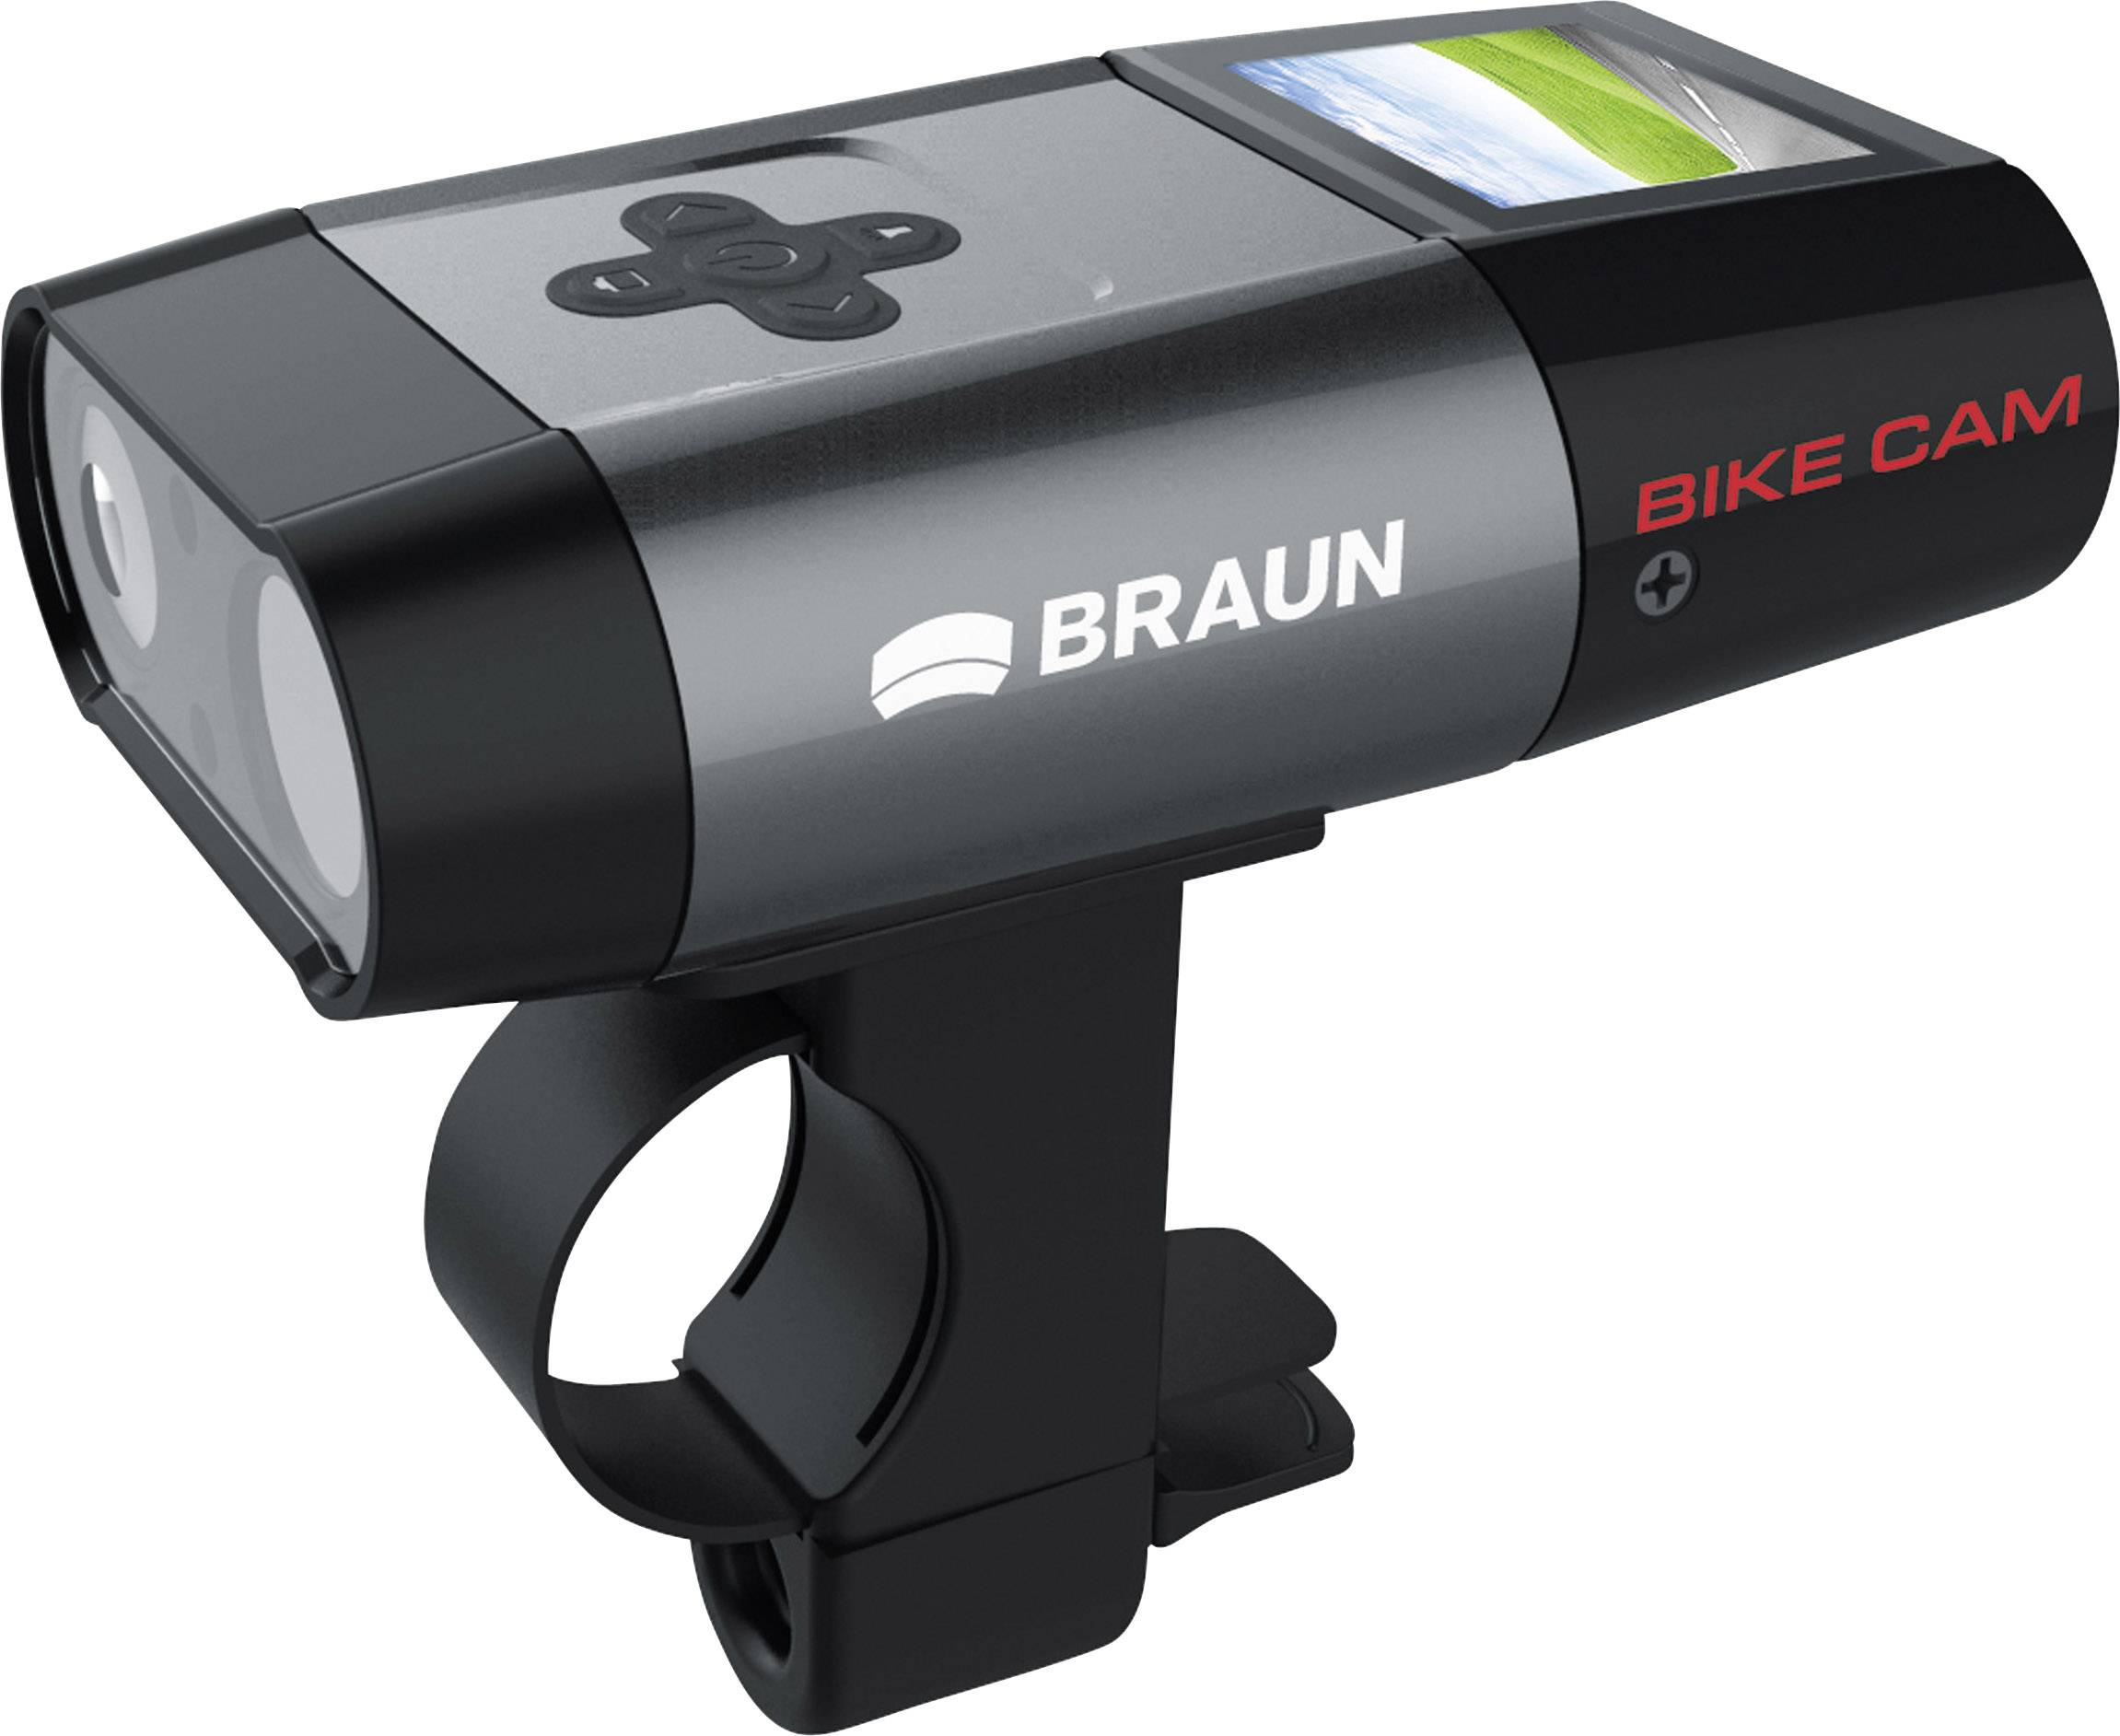 Braun Germany B-Bike Action camera Impermeabile, Antipolvere